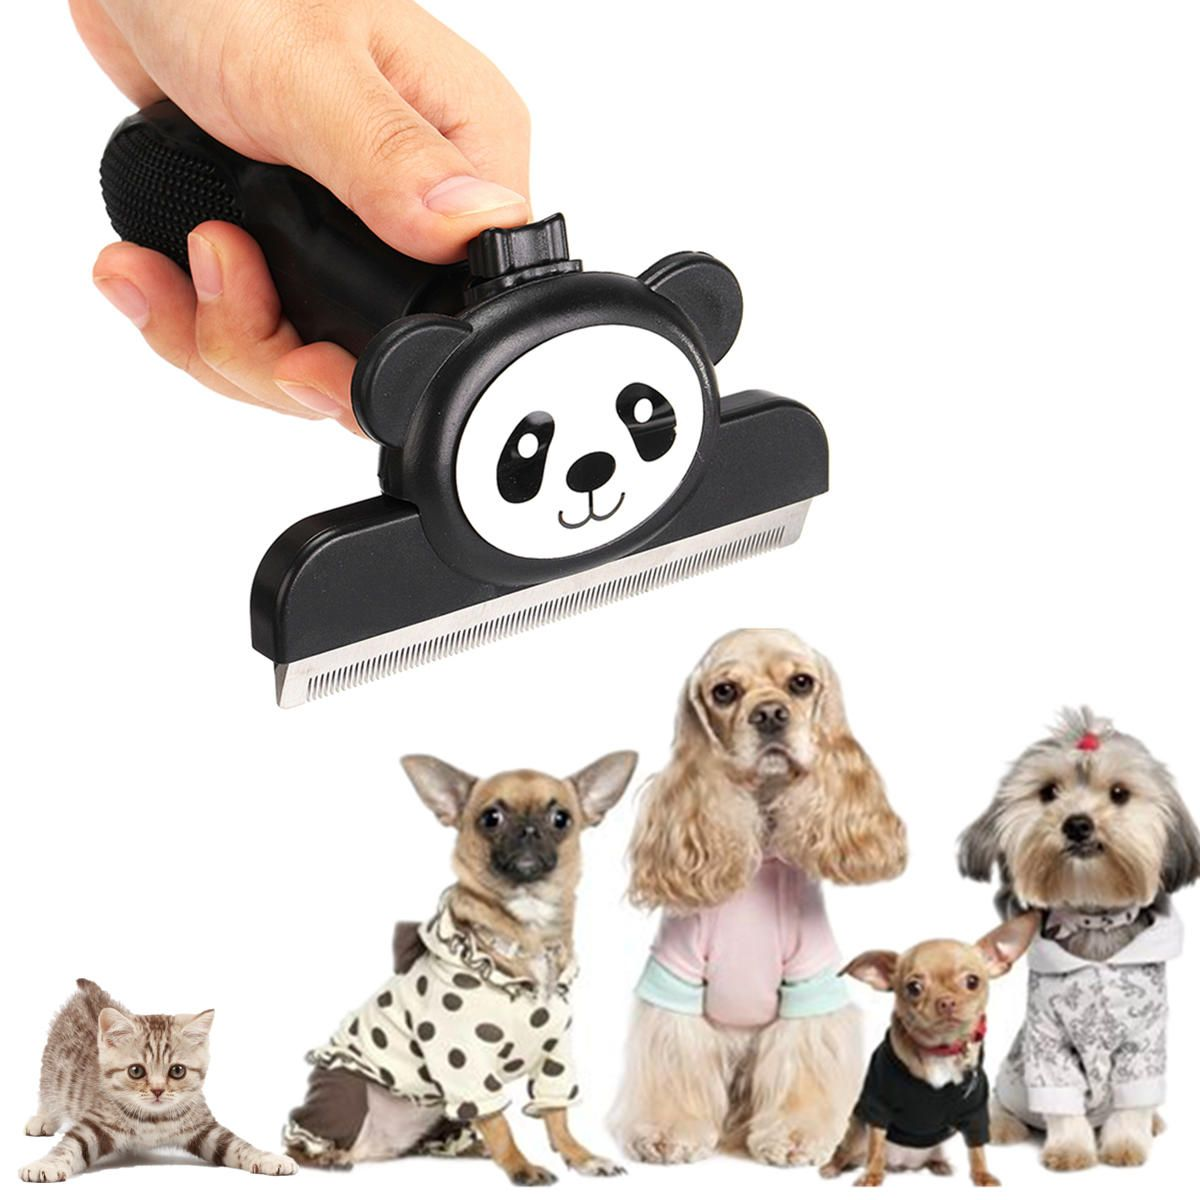 Surprising Pet Deshedding Tool And Grooming Brush For Dogs And Cats Download Free Architecture Designs Scobabritishbridgeorg